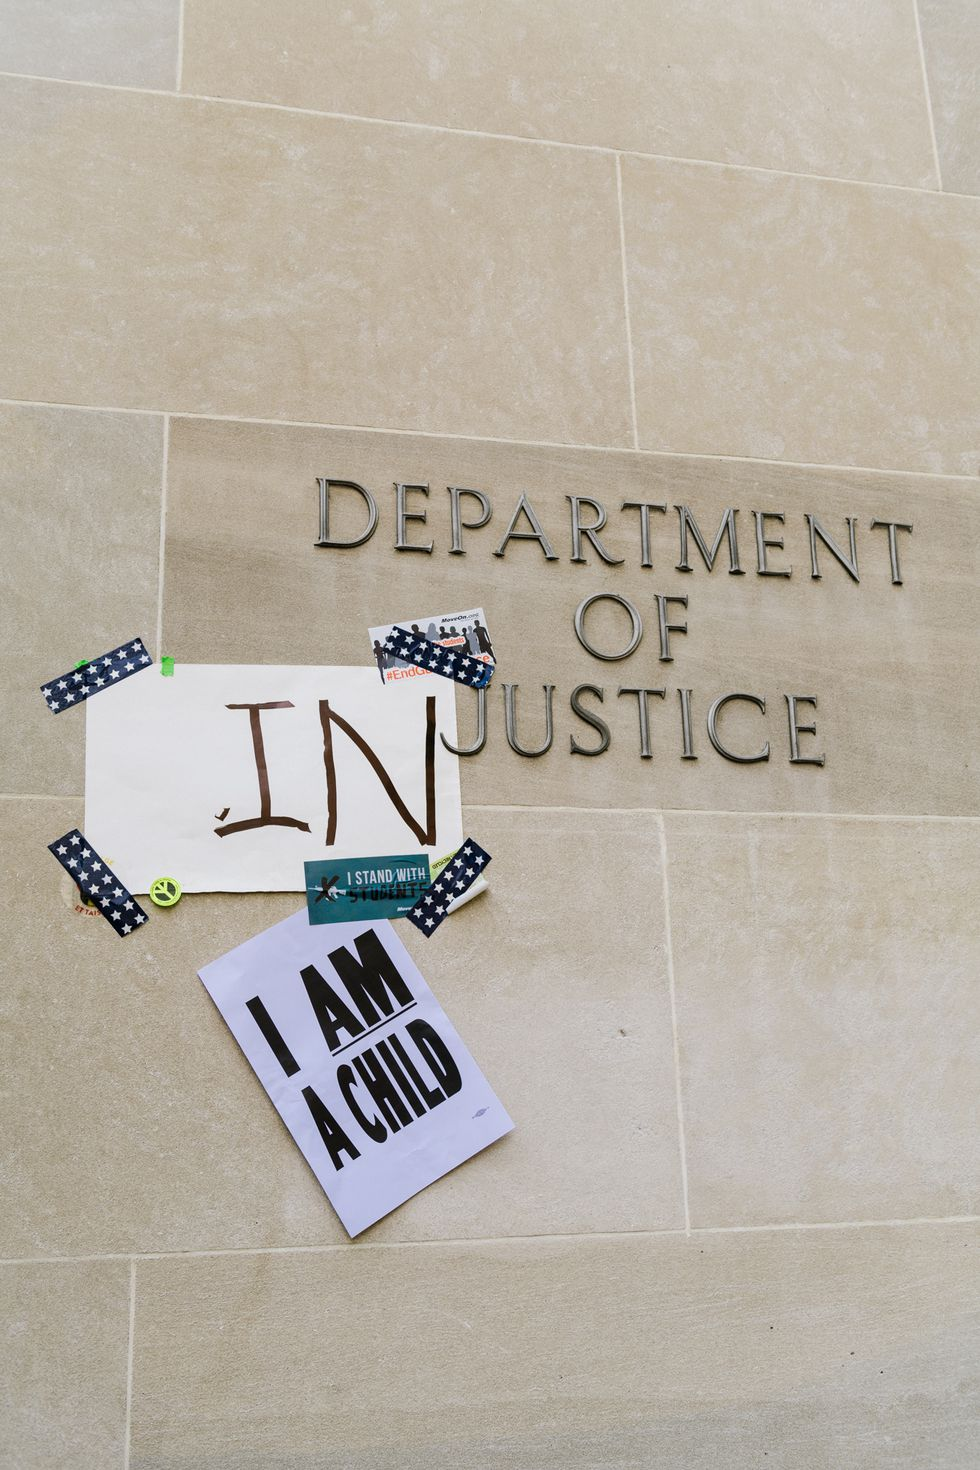 """Here, the """"I Am a Child"""" sign references the iconic """"I Am a Man"""" signs during the Civil Rights movement. Image by Kate Warren"""